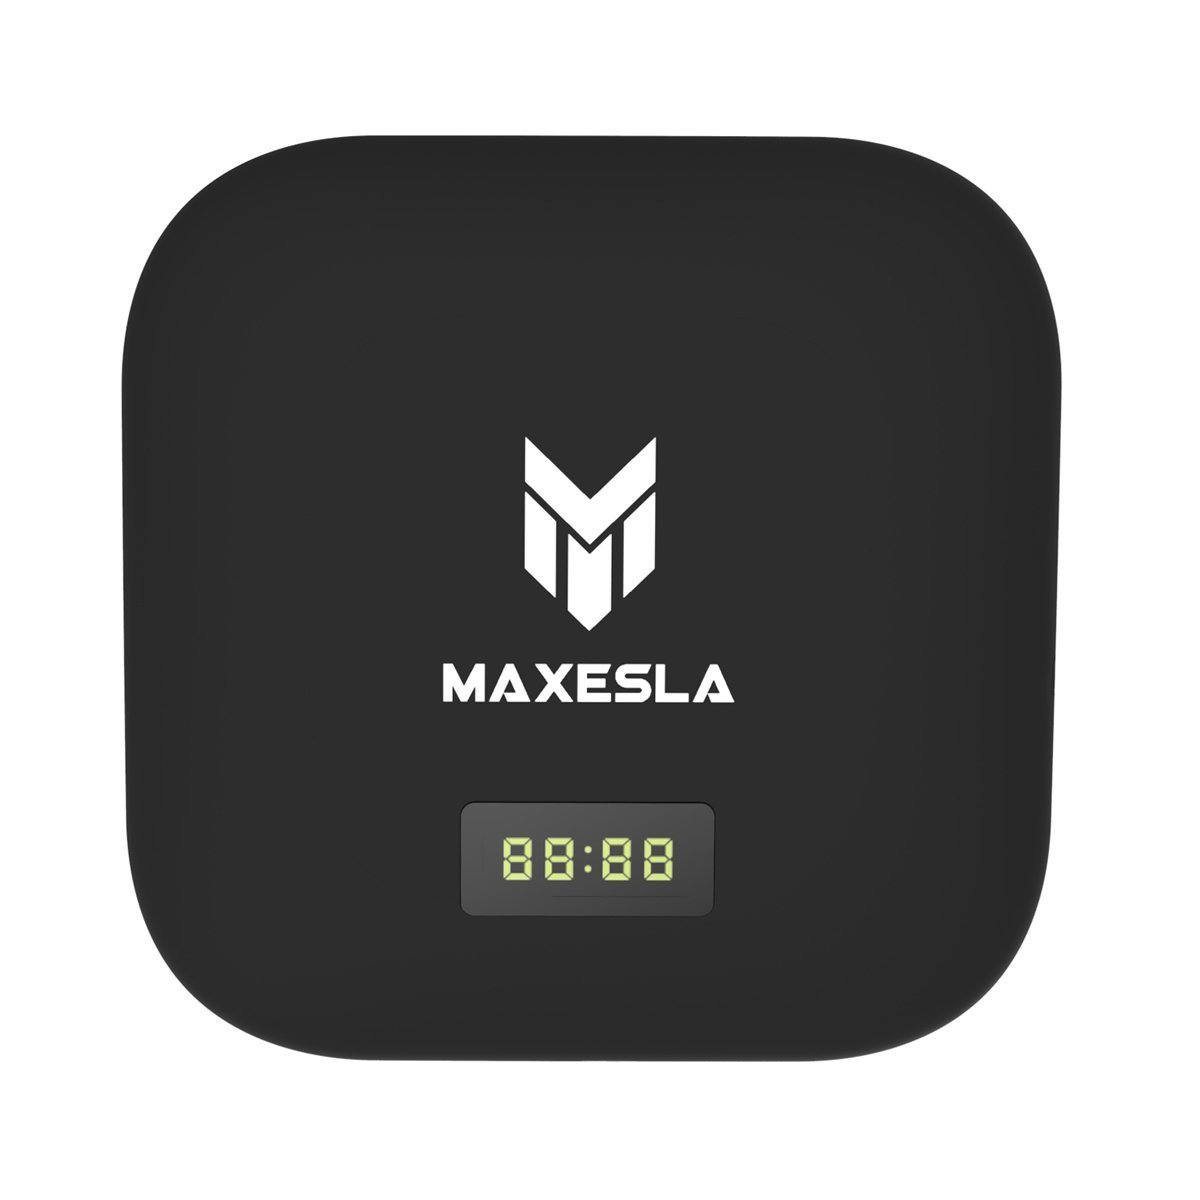 Cheap Iks Miracast Android Internet Tv Box With Apk, find Iks